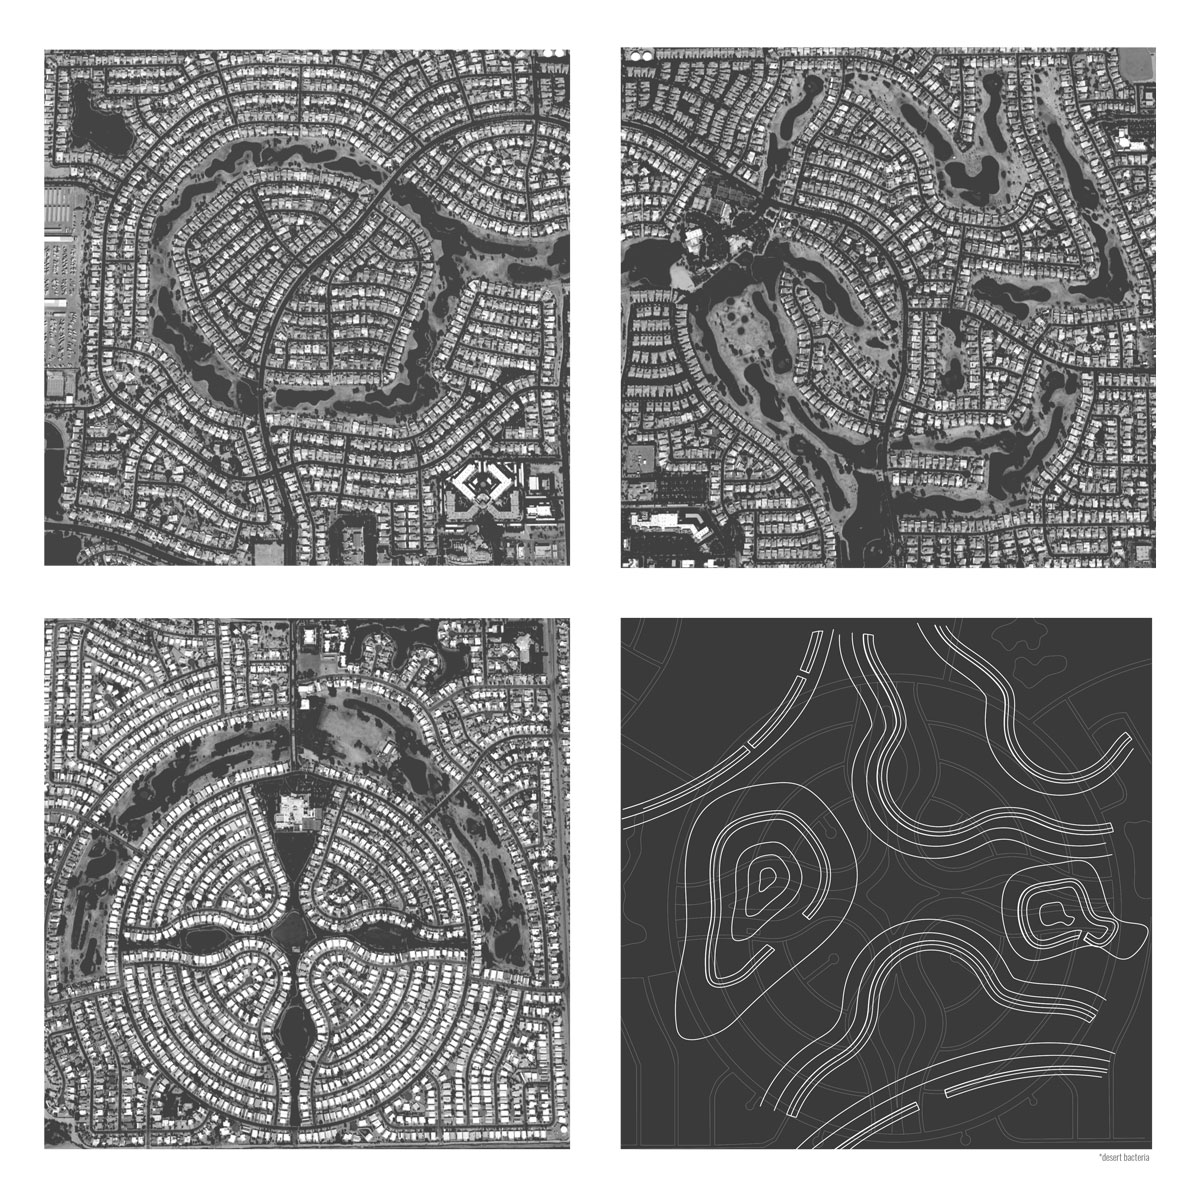 Series of aerials showing the ability to transform suburban communities into a natural landscape by student Amberley Johnson